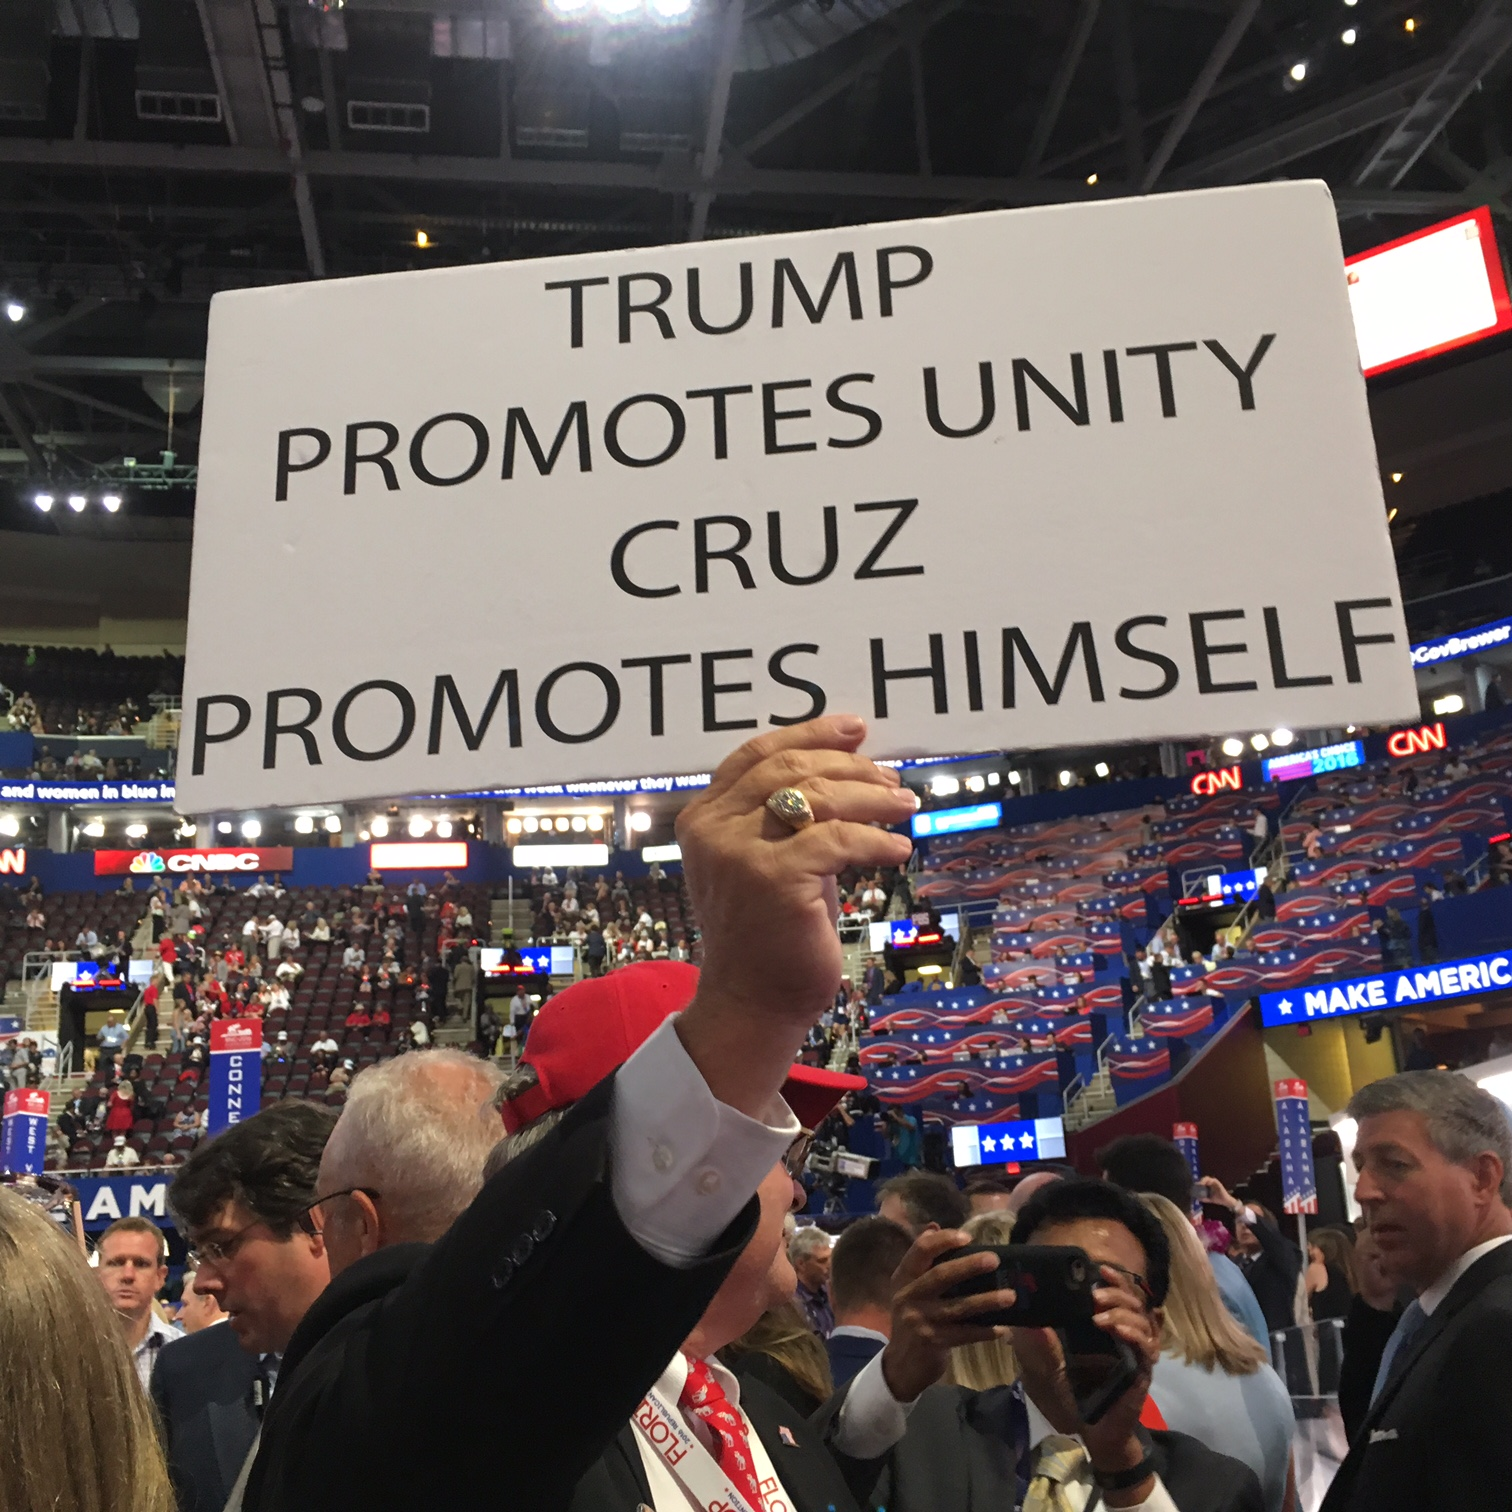 A delegate holds up an anti-Cruz sign.